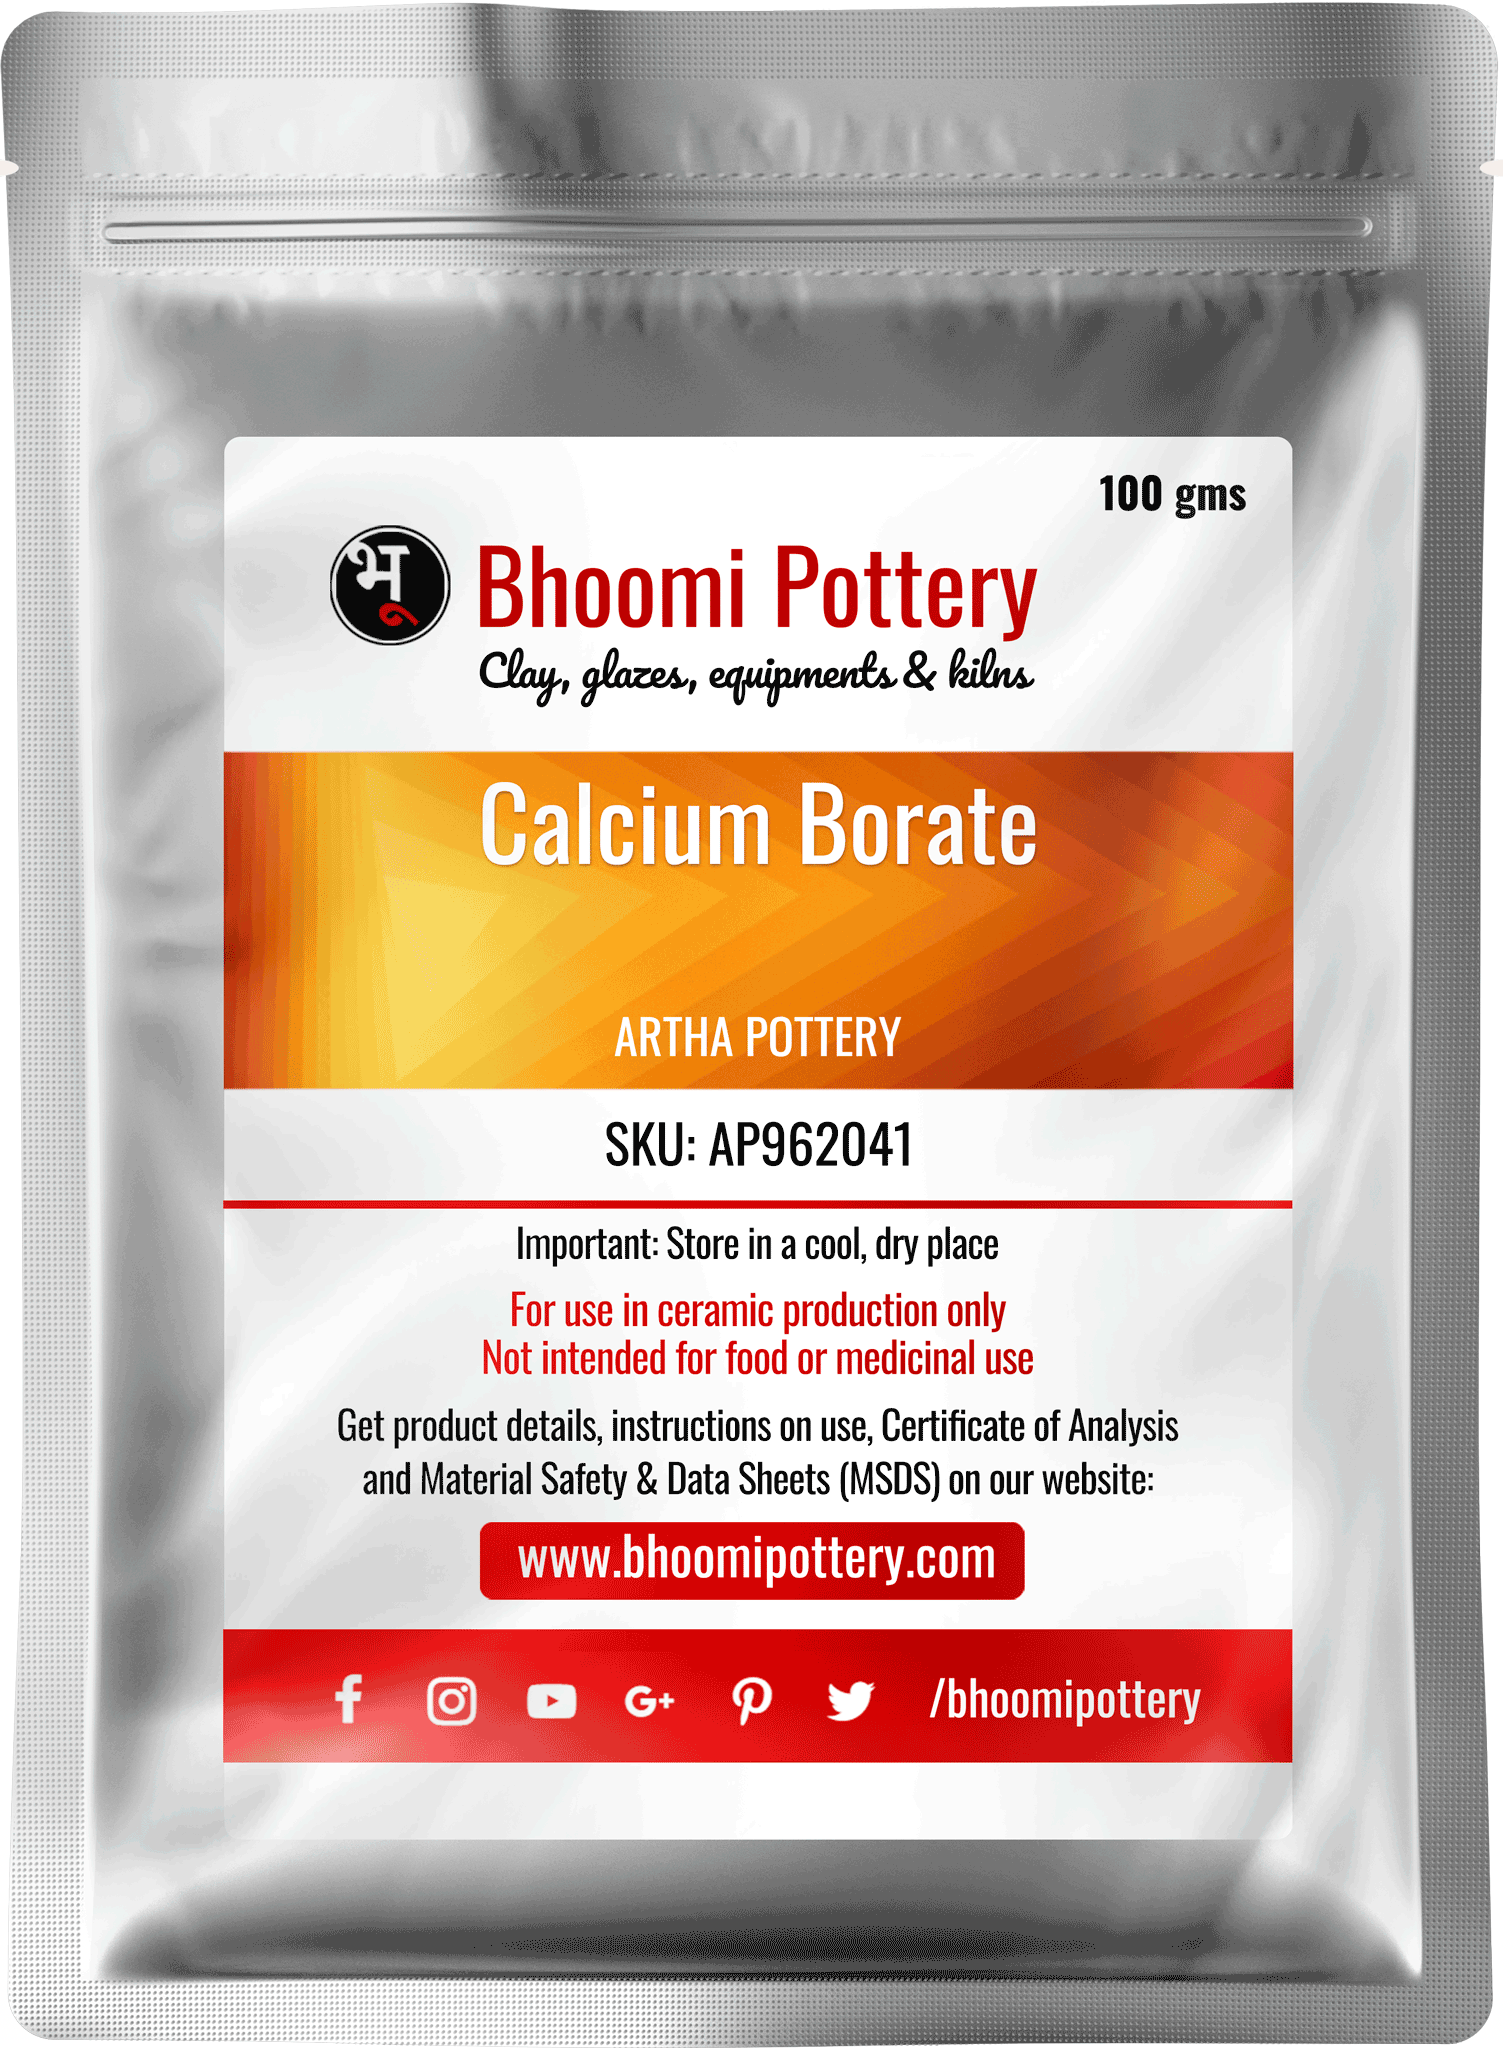 Artha Pottery Calcium Borate 100 gms for sale in India - Bhoomi Pottery